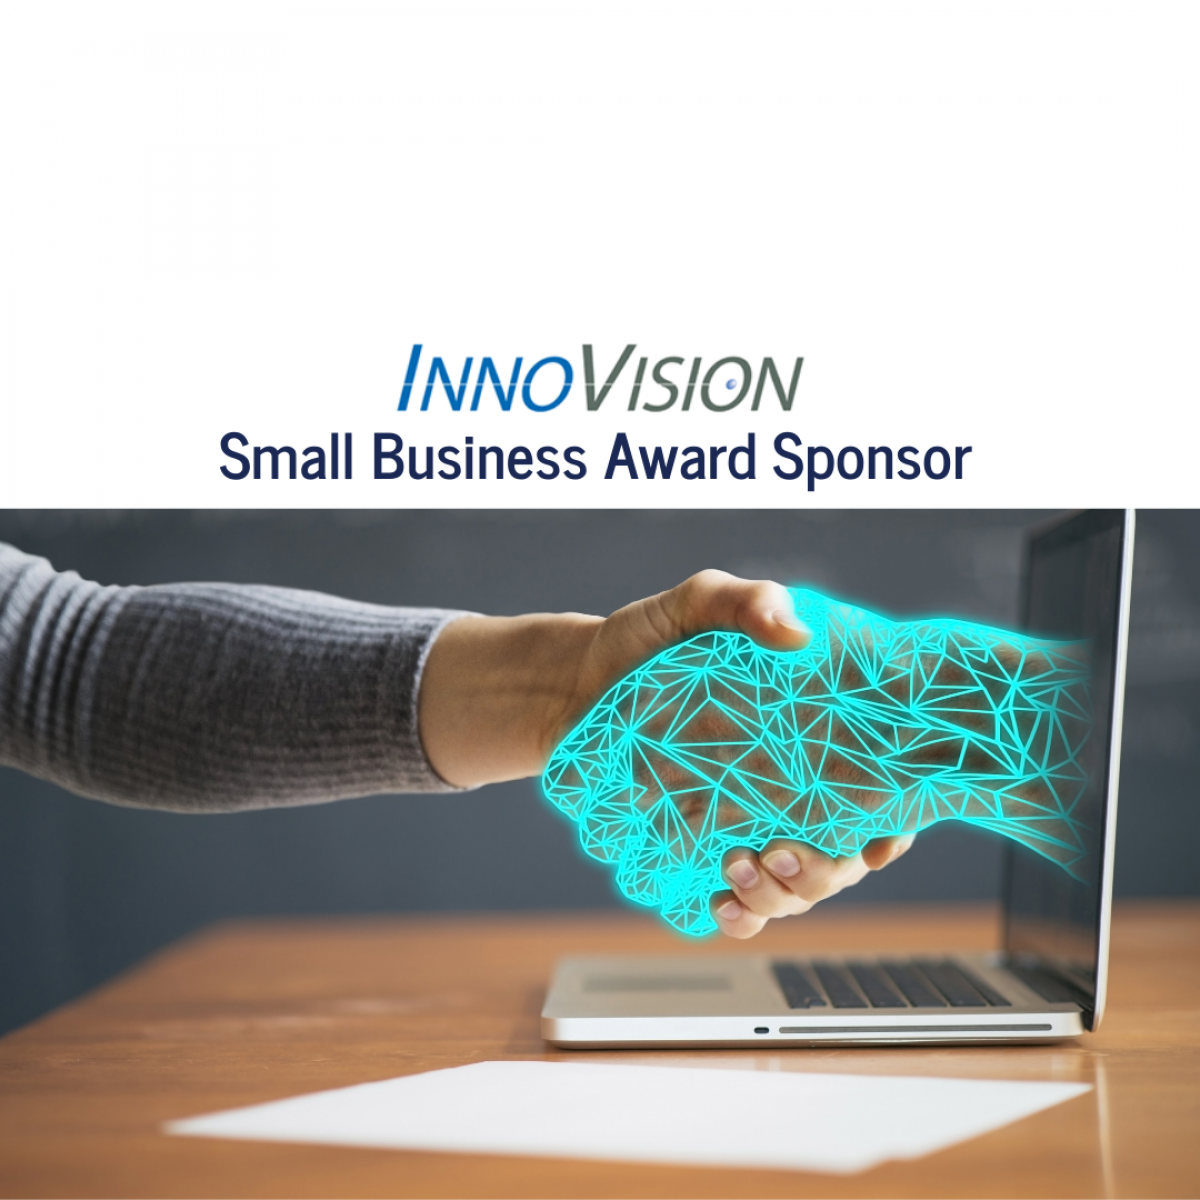 Kim & Layhey Law Firm Sponsors InnoVision Award for Small Business